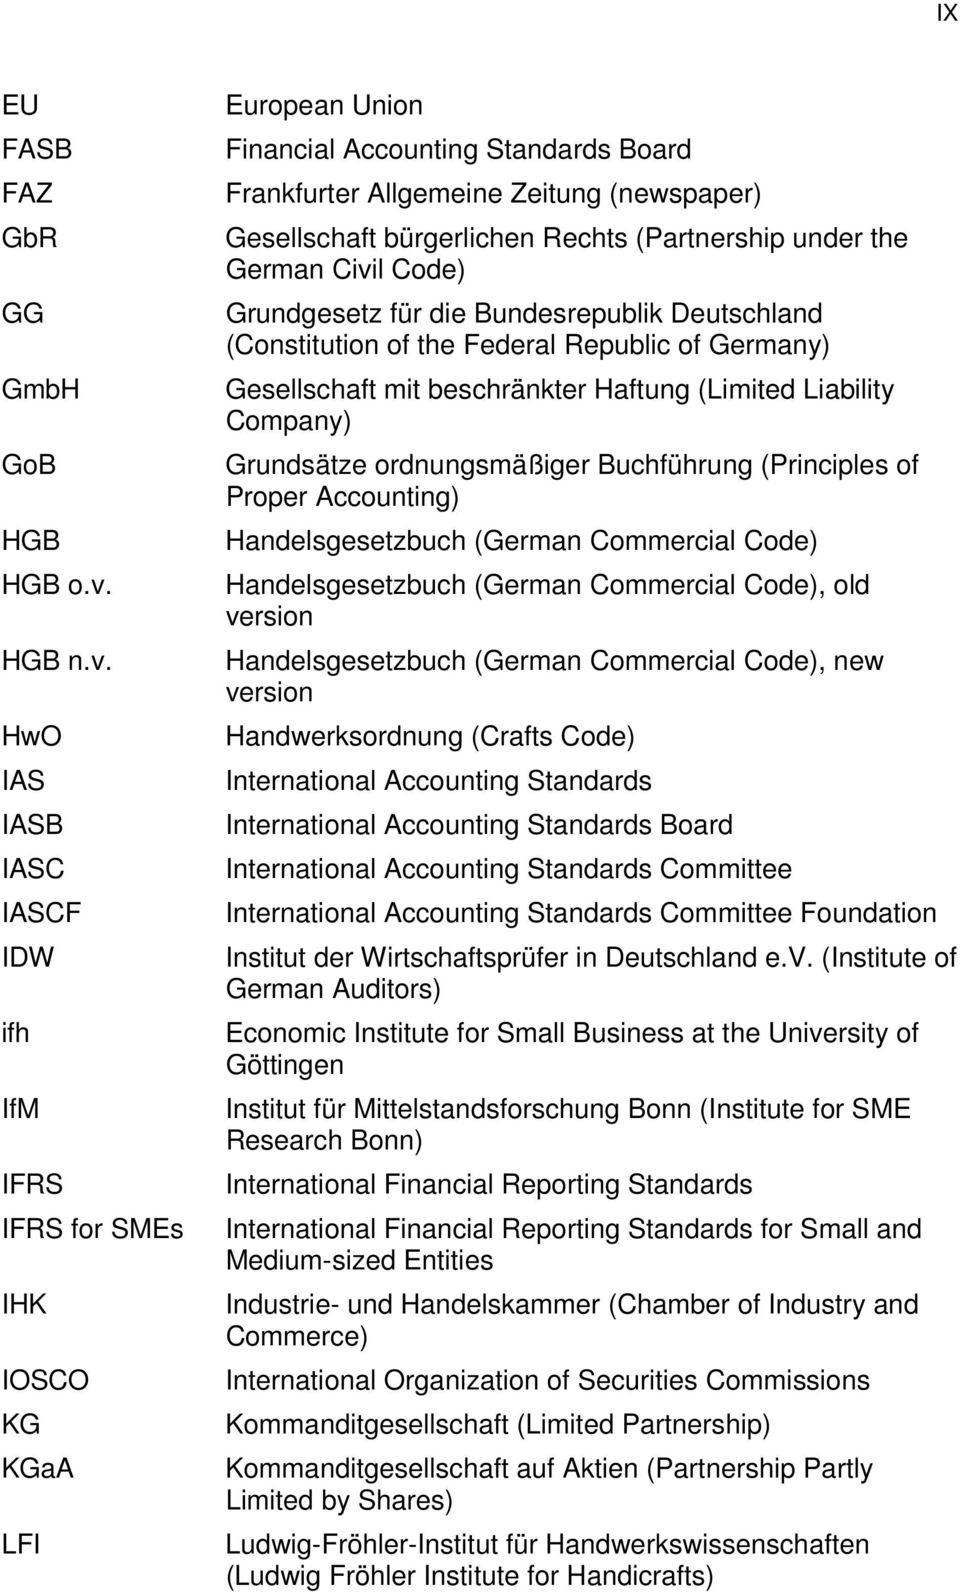 HwO IAS IASB IASC IASCF IDW ifh IfM IFRS IFRS for SMEs IHK IOSCO KG KGaA LFI European Union Financial Accounting Standards Board Frankfurter Allgemeine Zeitung (newspaper) Gesellschaft bürgerlichen